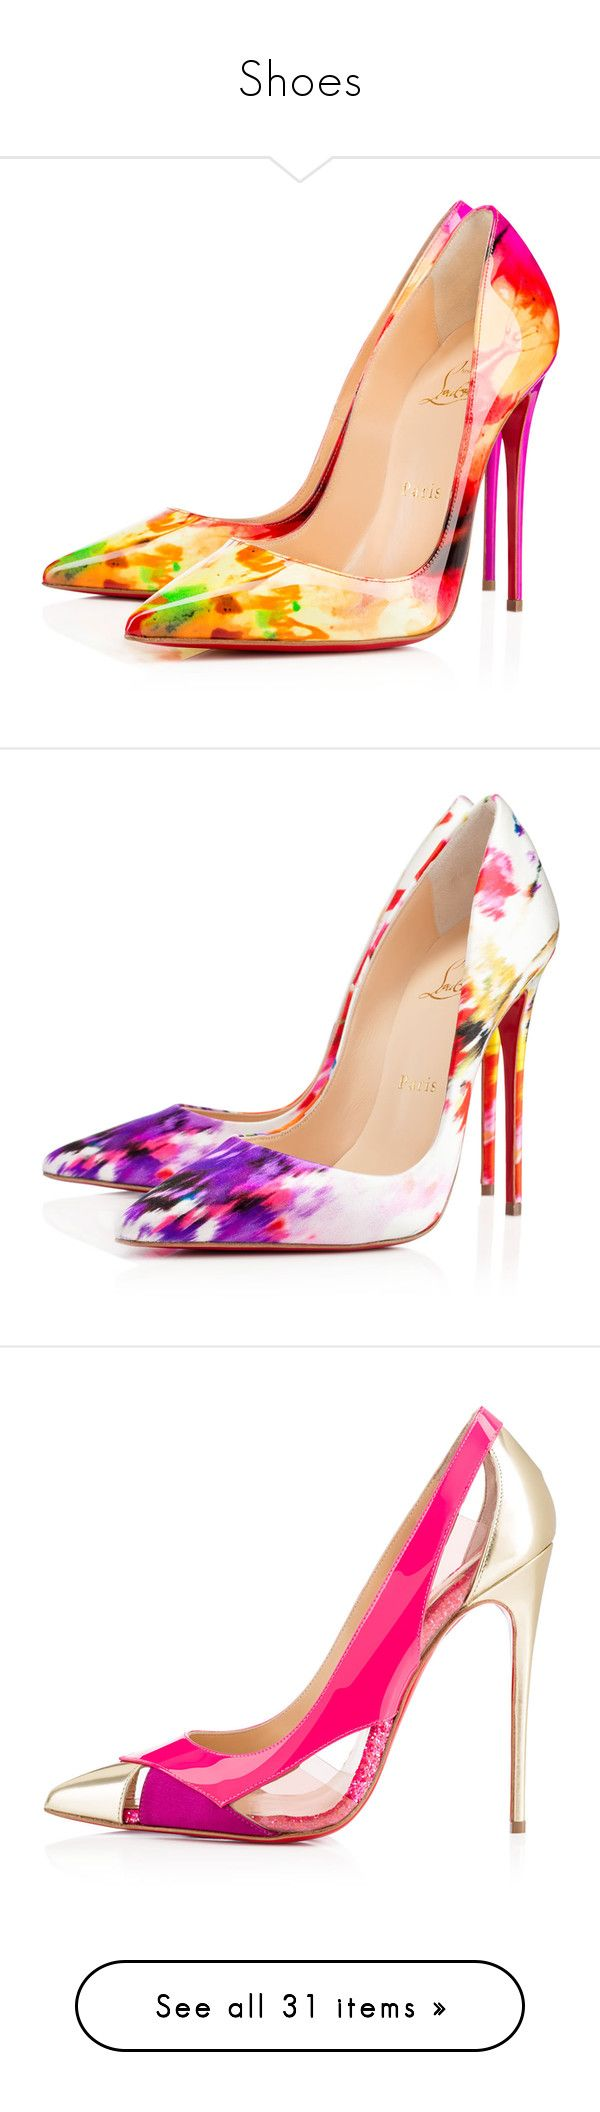 """""""Shoes"""" by asia-12 ❤ liked on Polyvore featuring shoes, pumps, heels, christian louboutin, patent leather shoes, summer pumps, christian louboutin shoes, sexy pumps, patent leather pumps and high heels"""